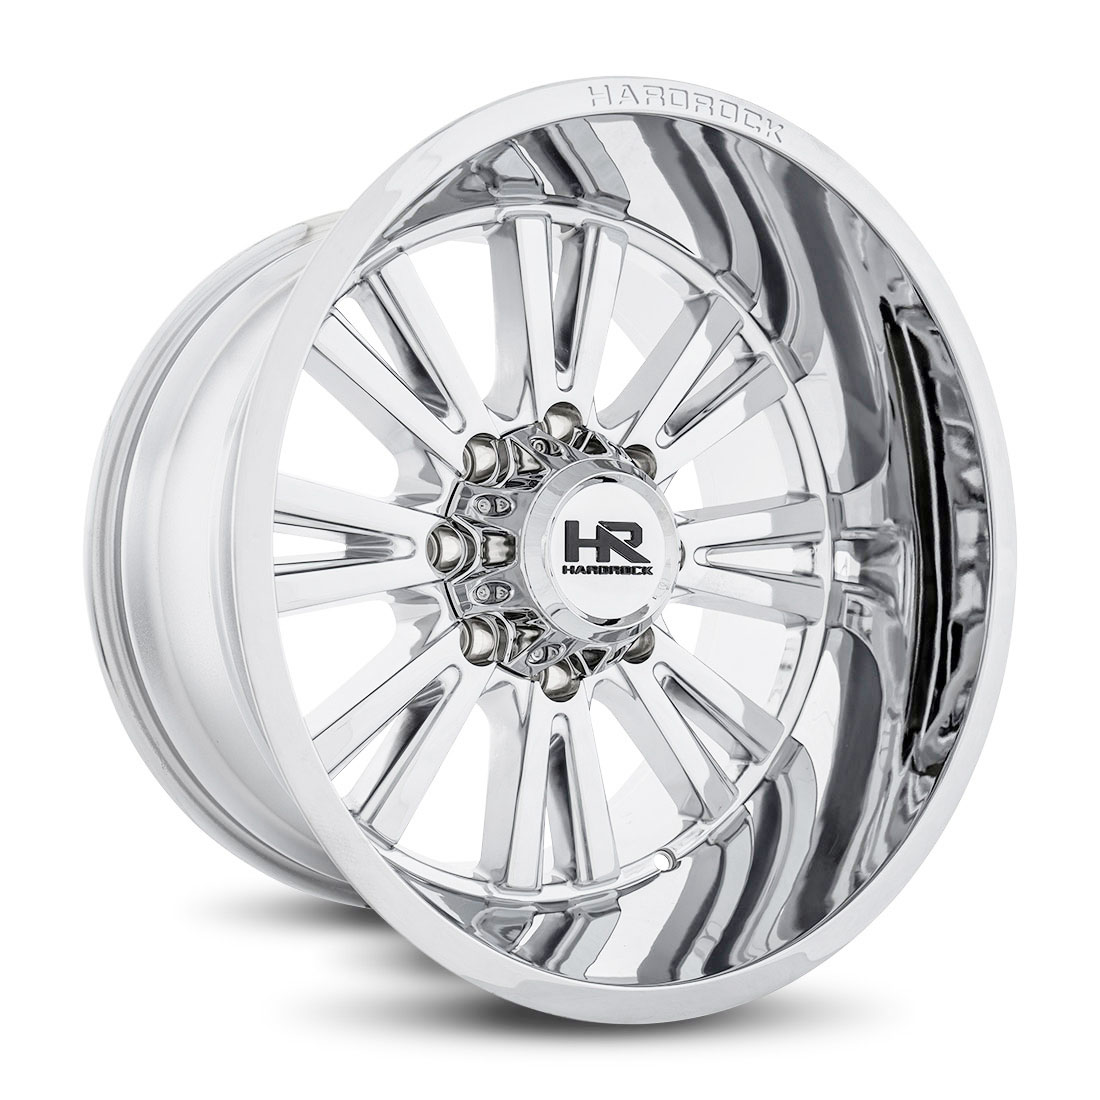 Hardrock Offroad Wheels H503 Spine-Xposed - Chrome - 22x12